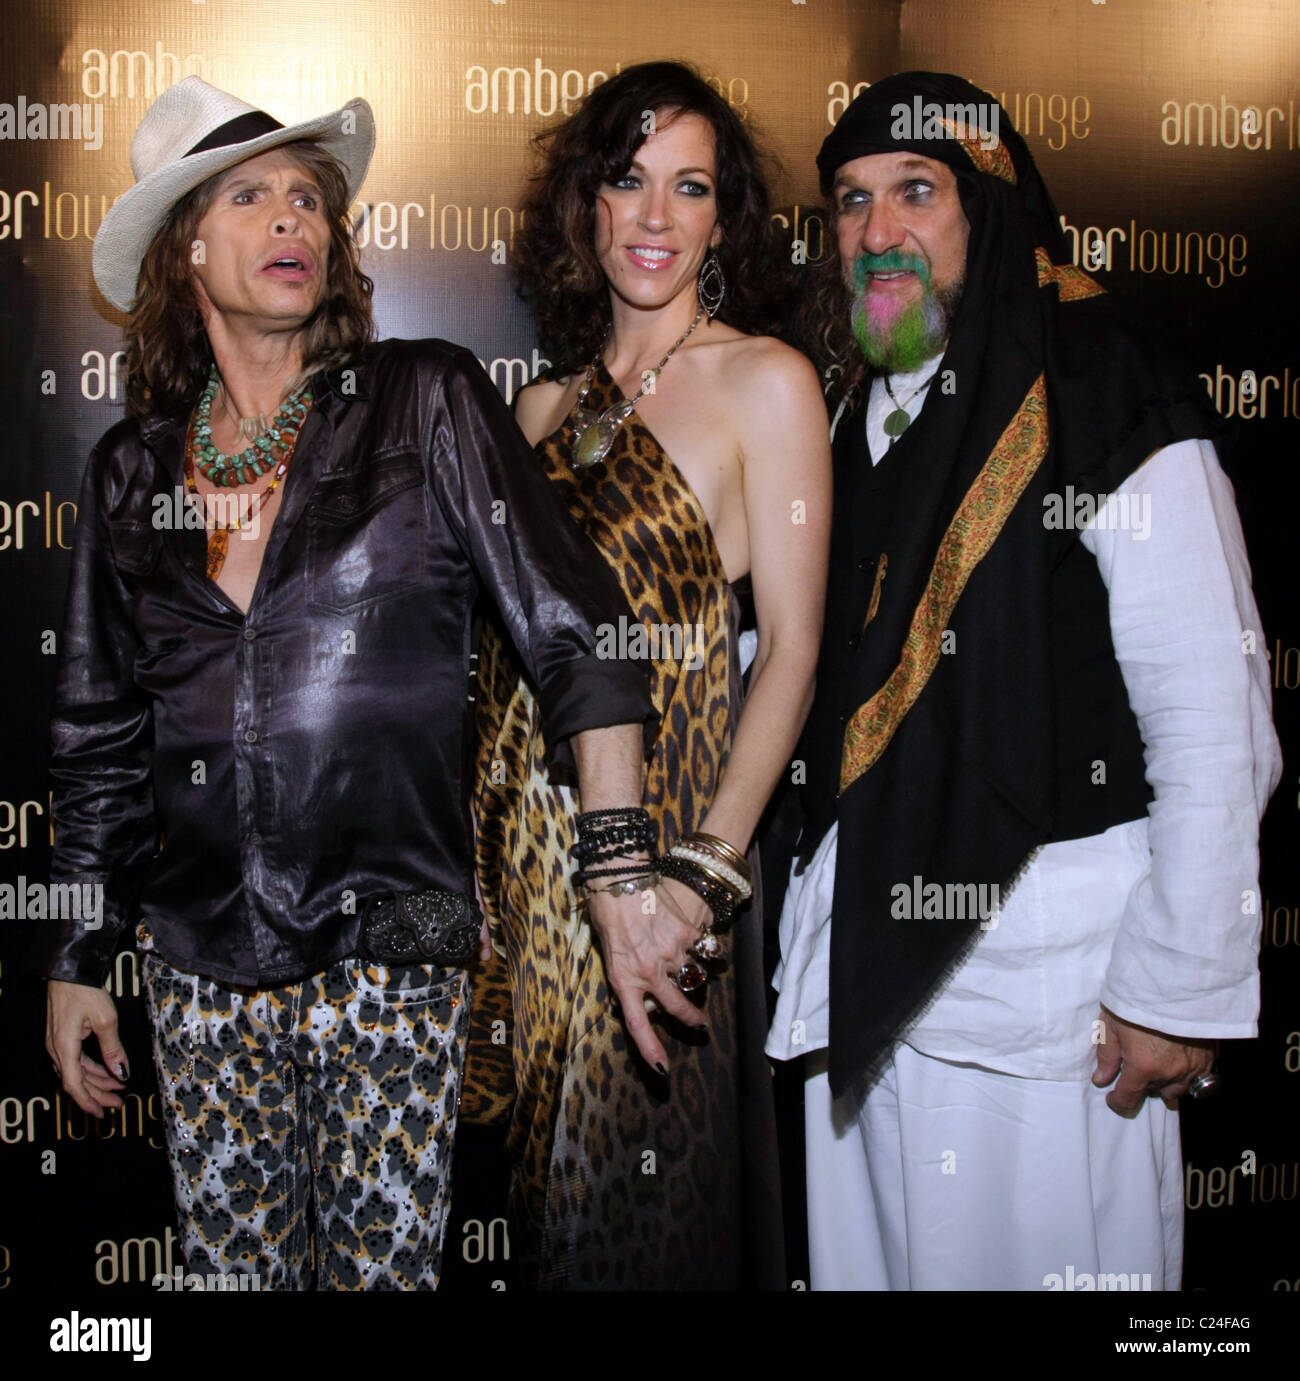 Erin Brady and Steven Tyler and guests Amber lounge F1 after party ...